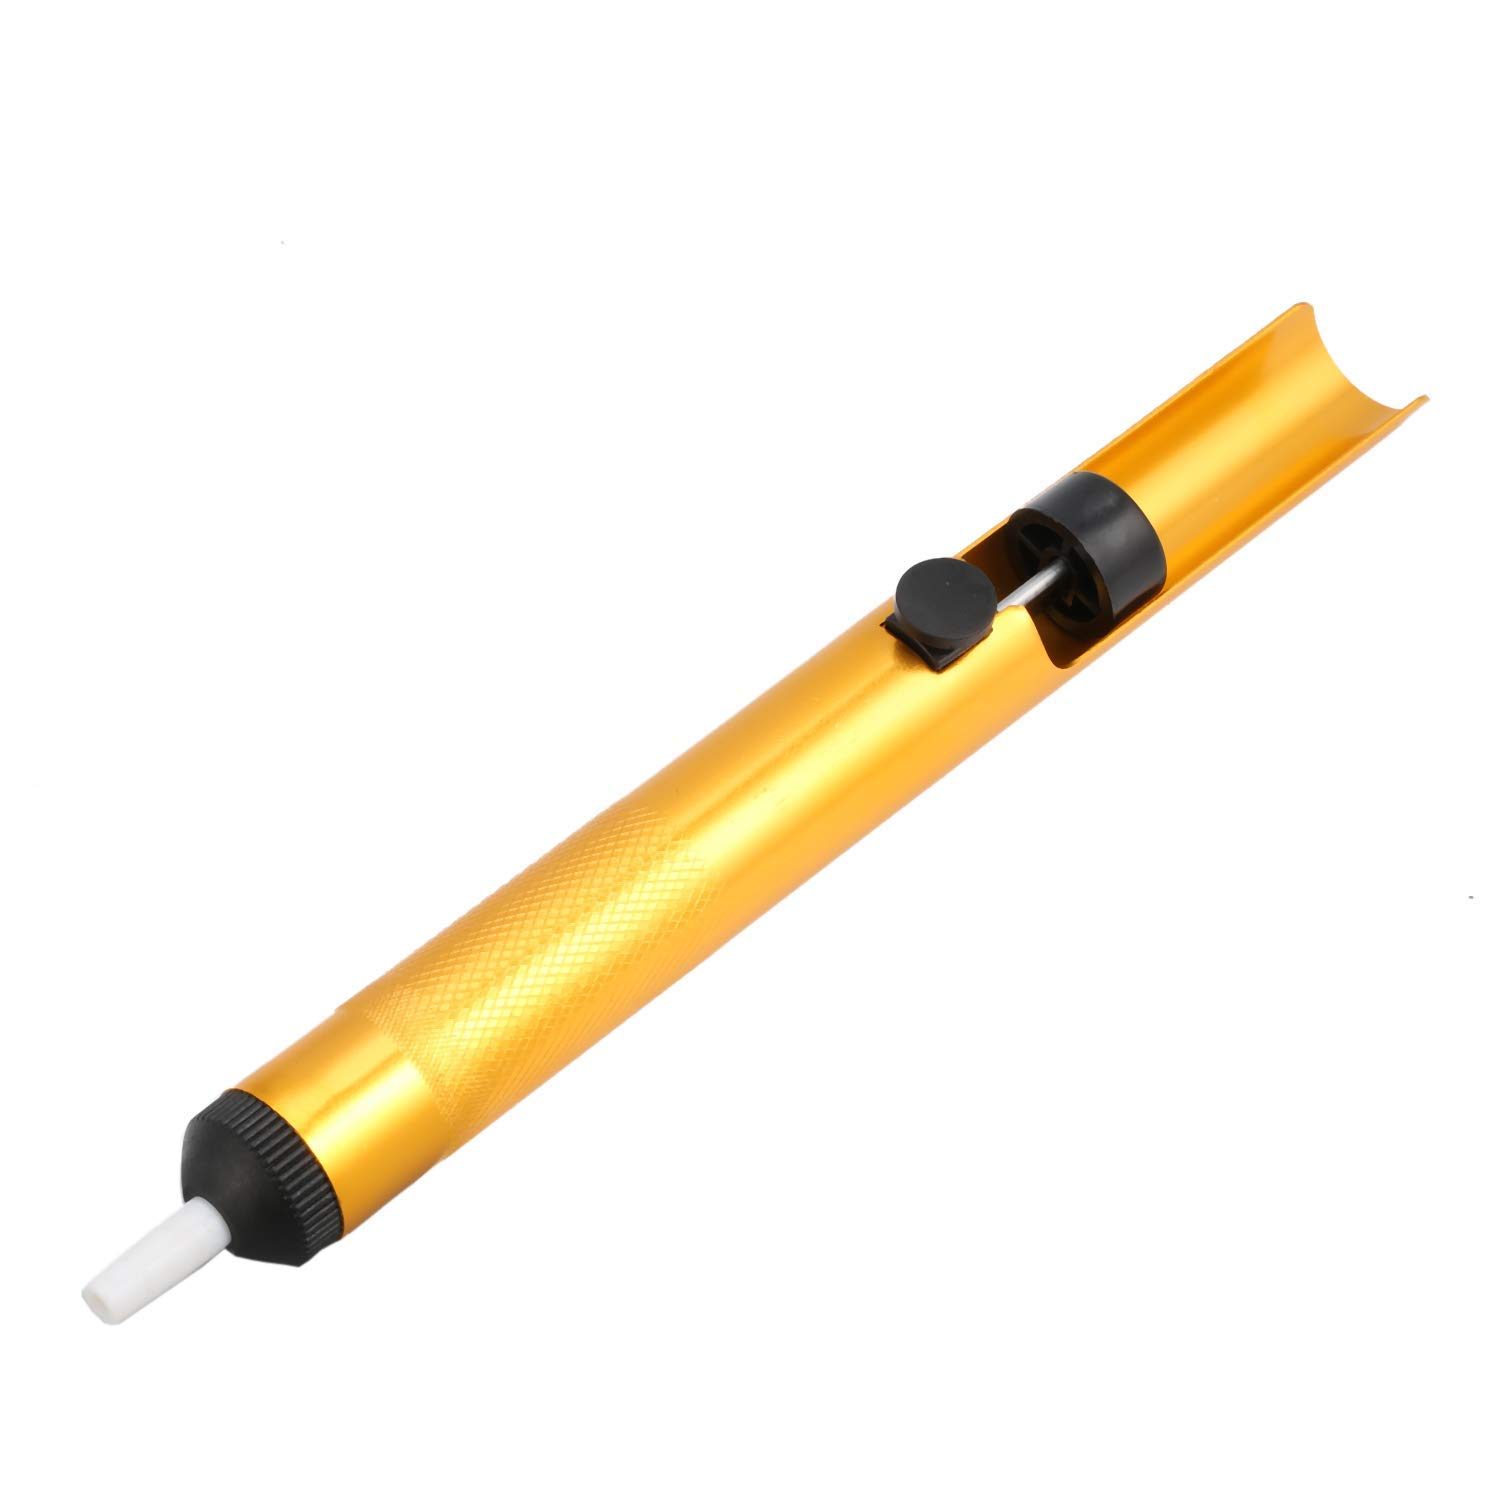 Gold IC SMD Pick up Vacuum Sucking Pen Remover Tool with 3 Suction Headers Lheng CMT-136 Semi-Metal Suction Tin Soldering Pen